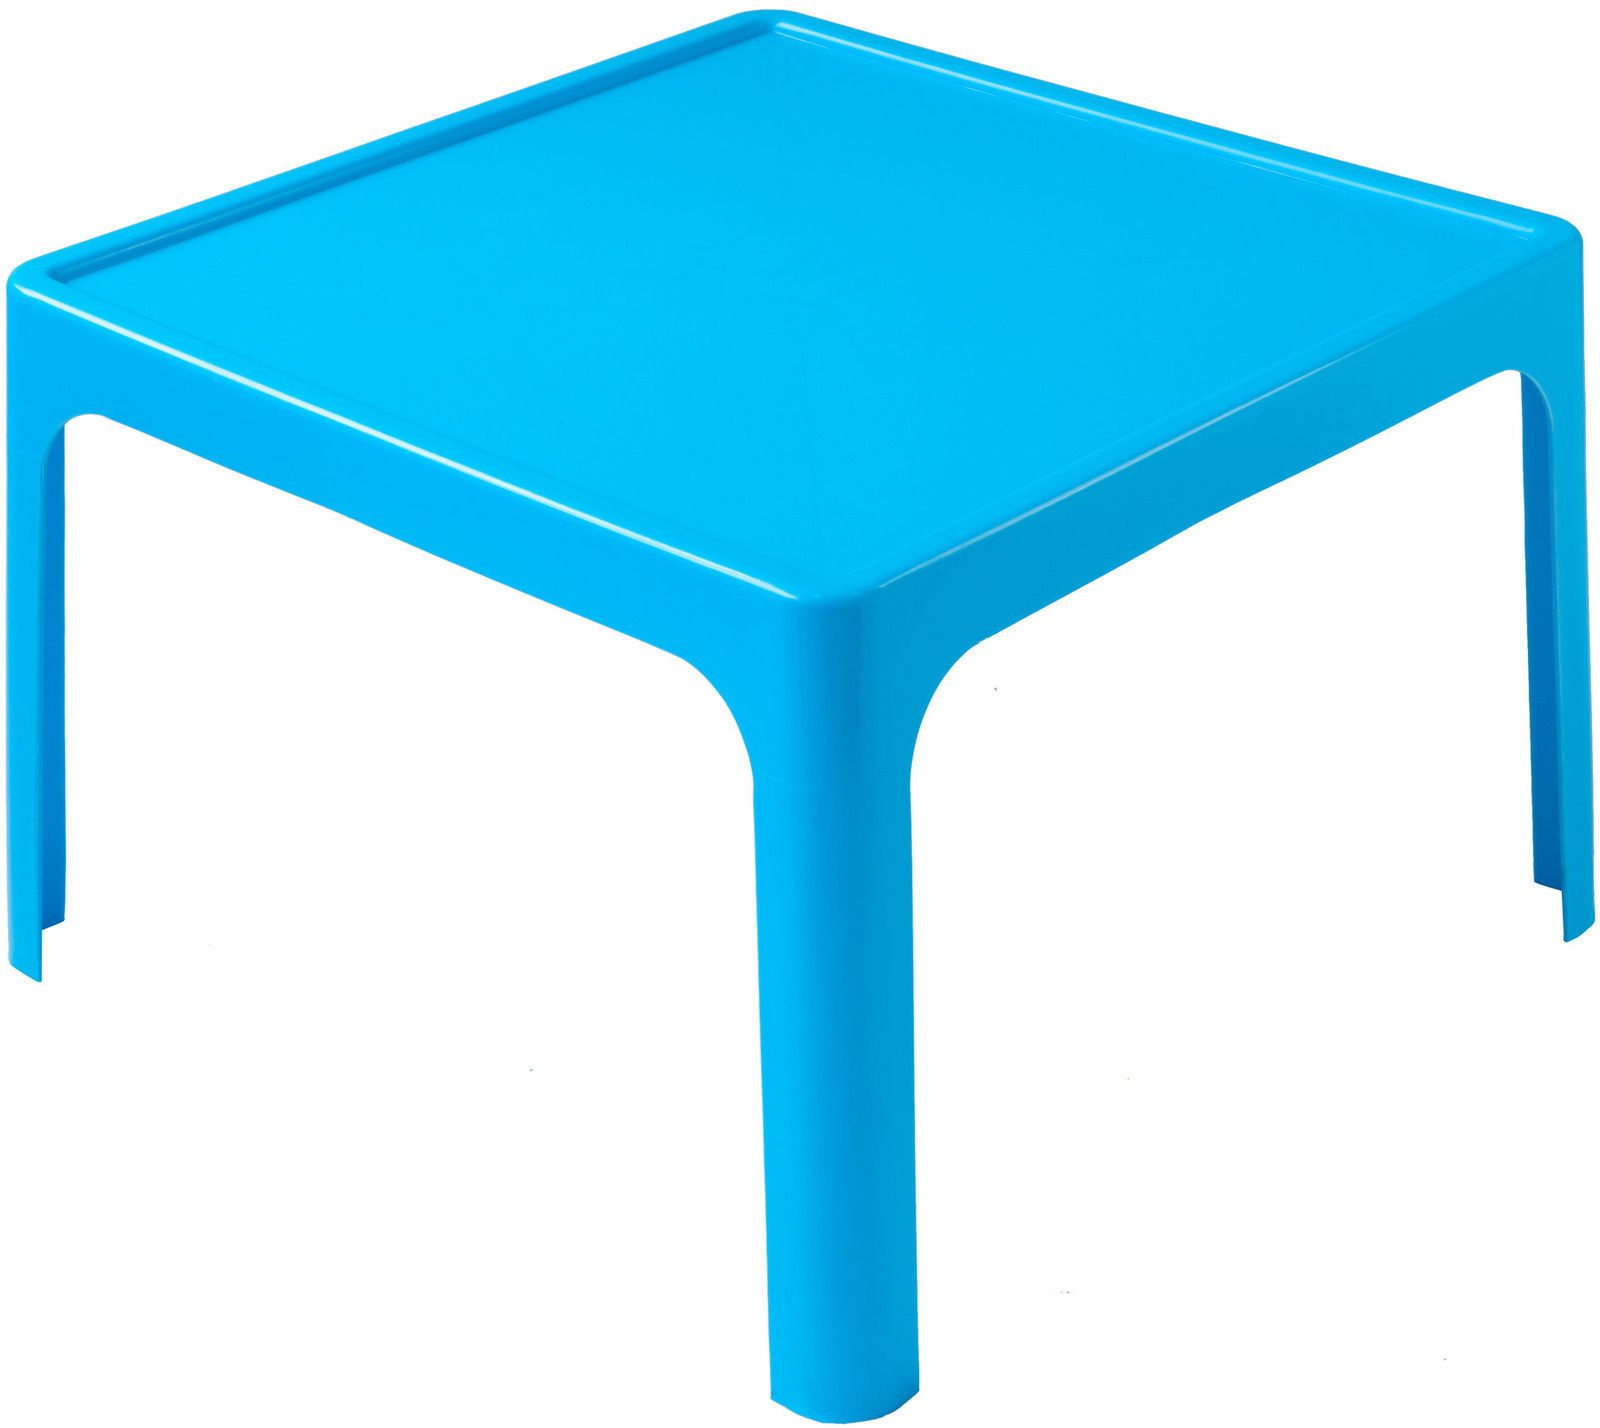 Childrens Table  4 Chair Set Resin Plastic Stackable BLUE Kids